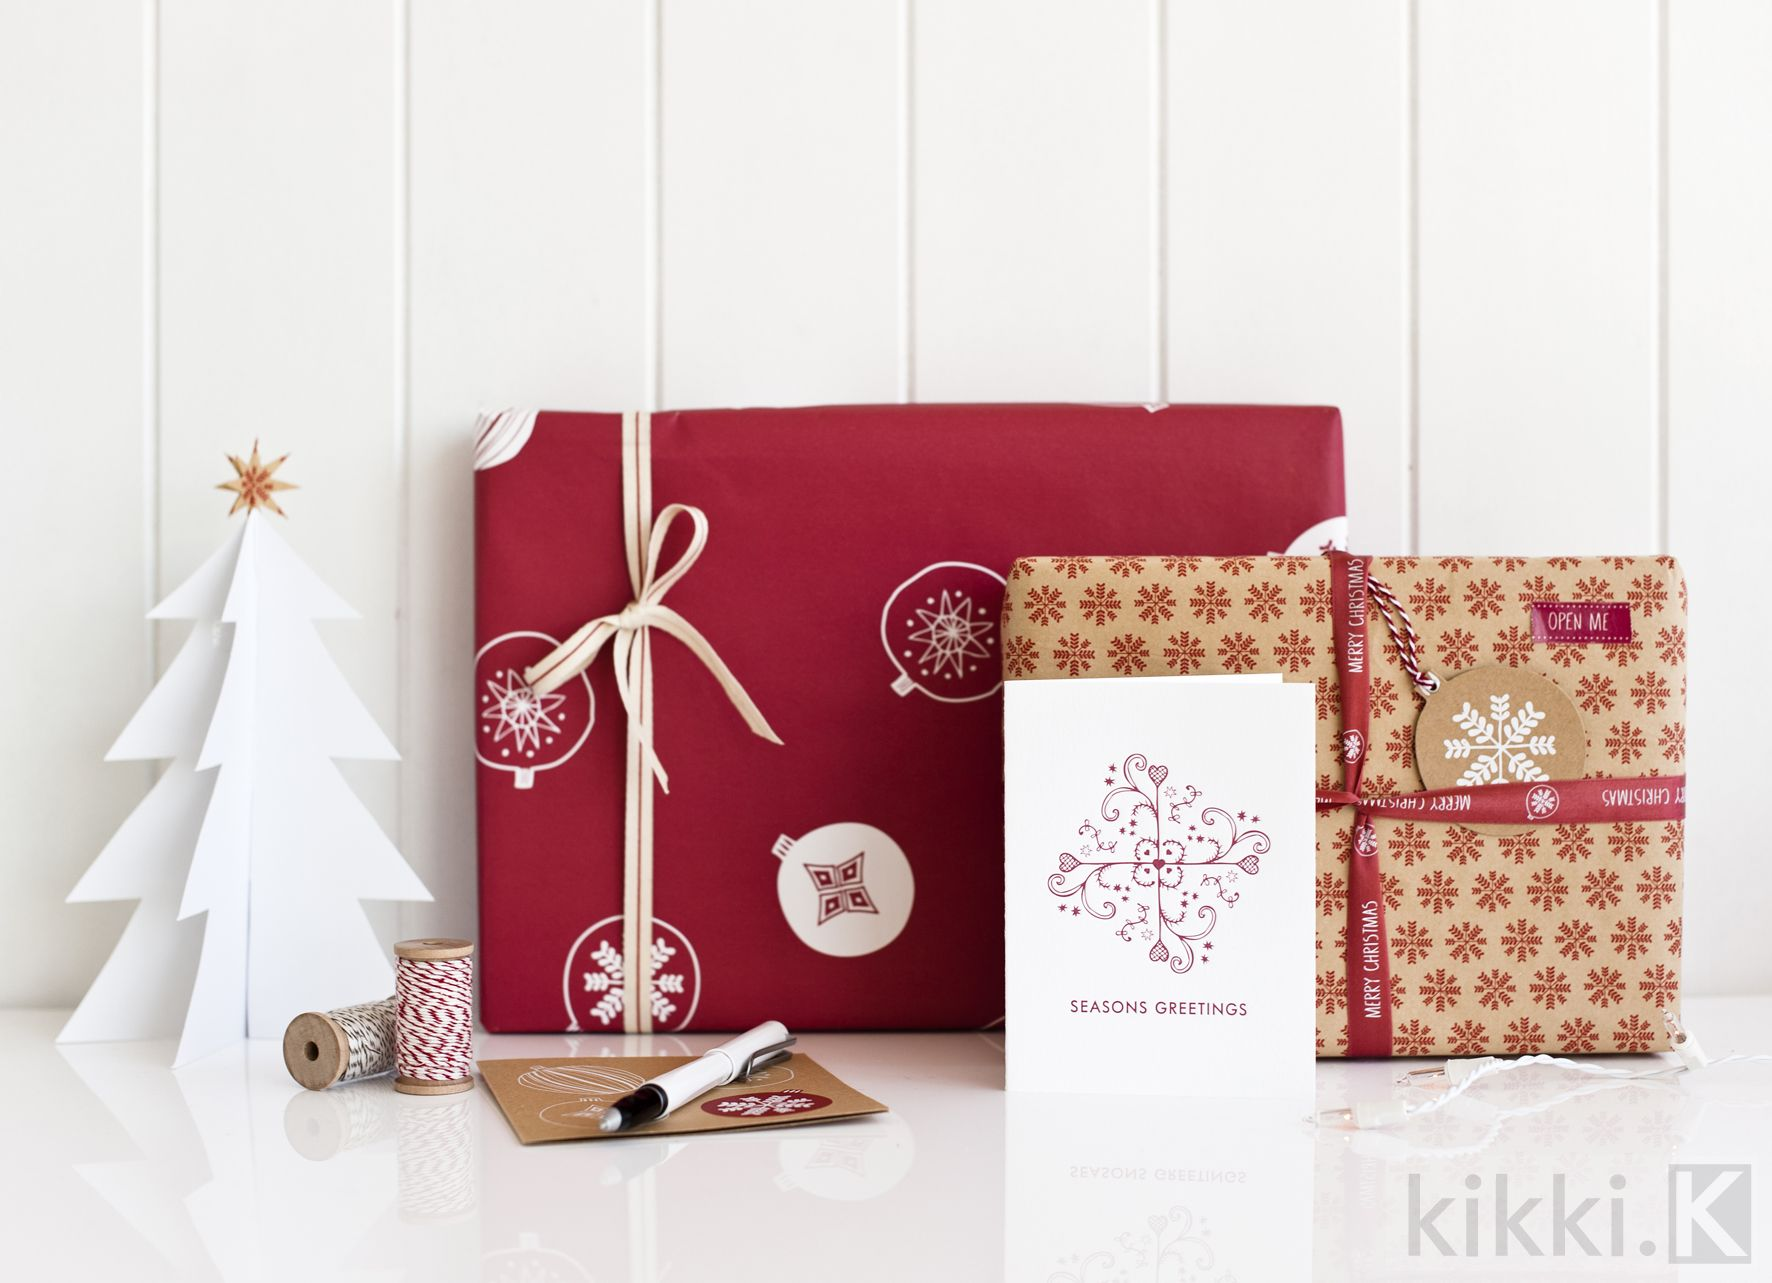 Beautiful swedish christmas inspired cards and wrappings